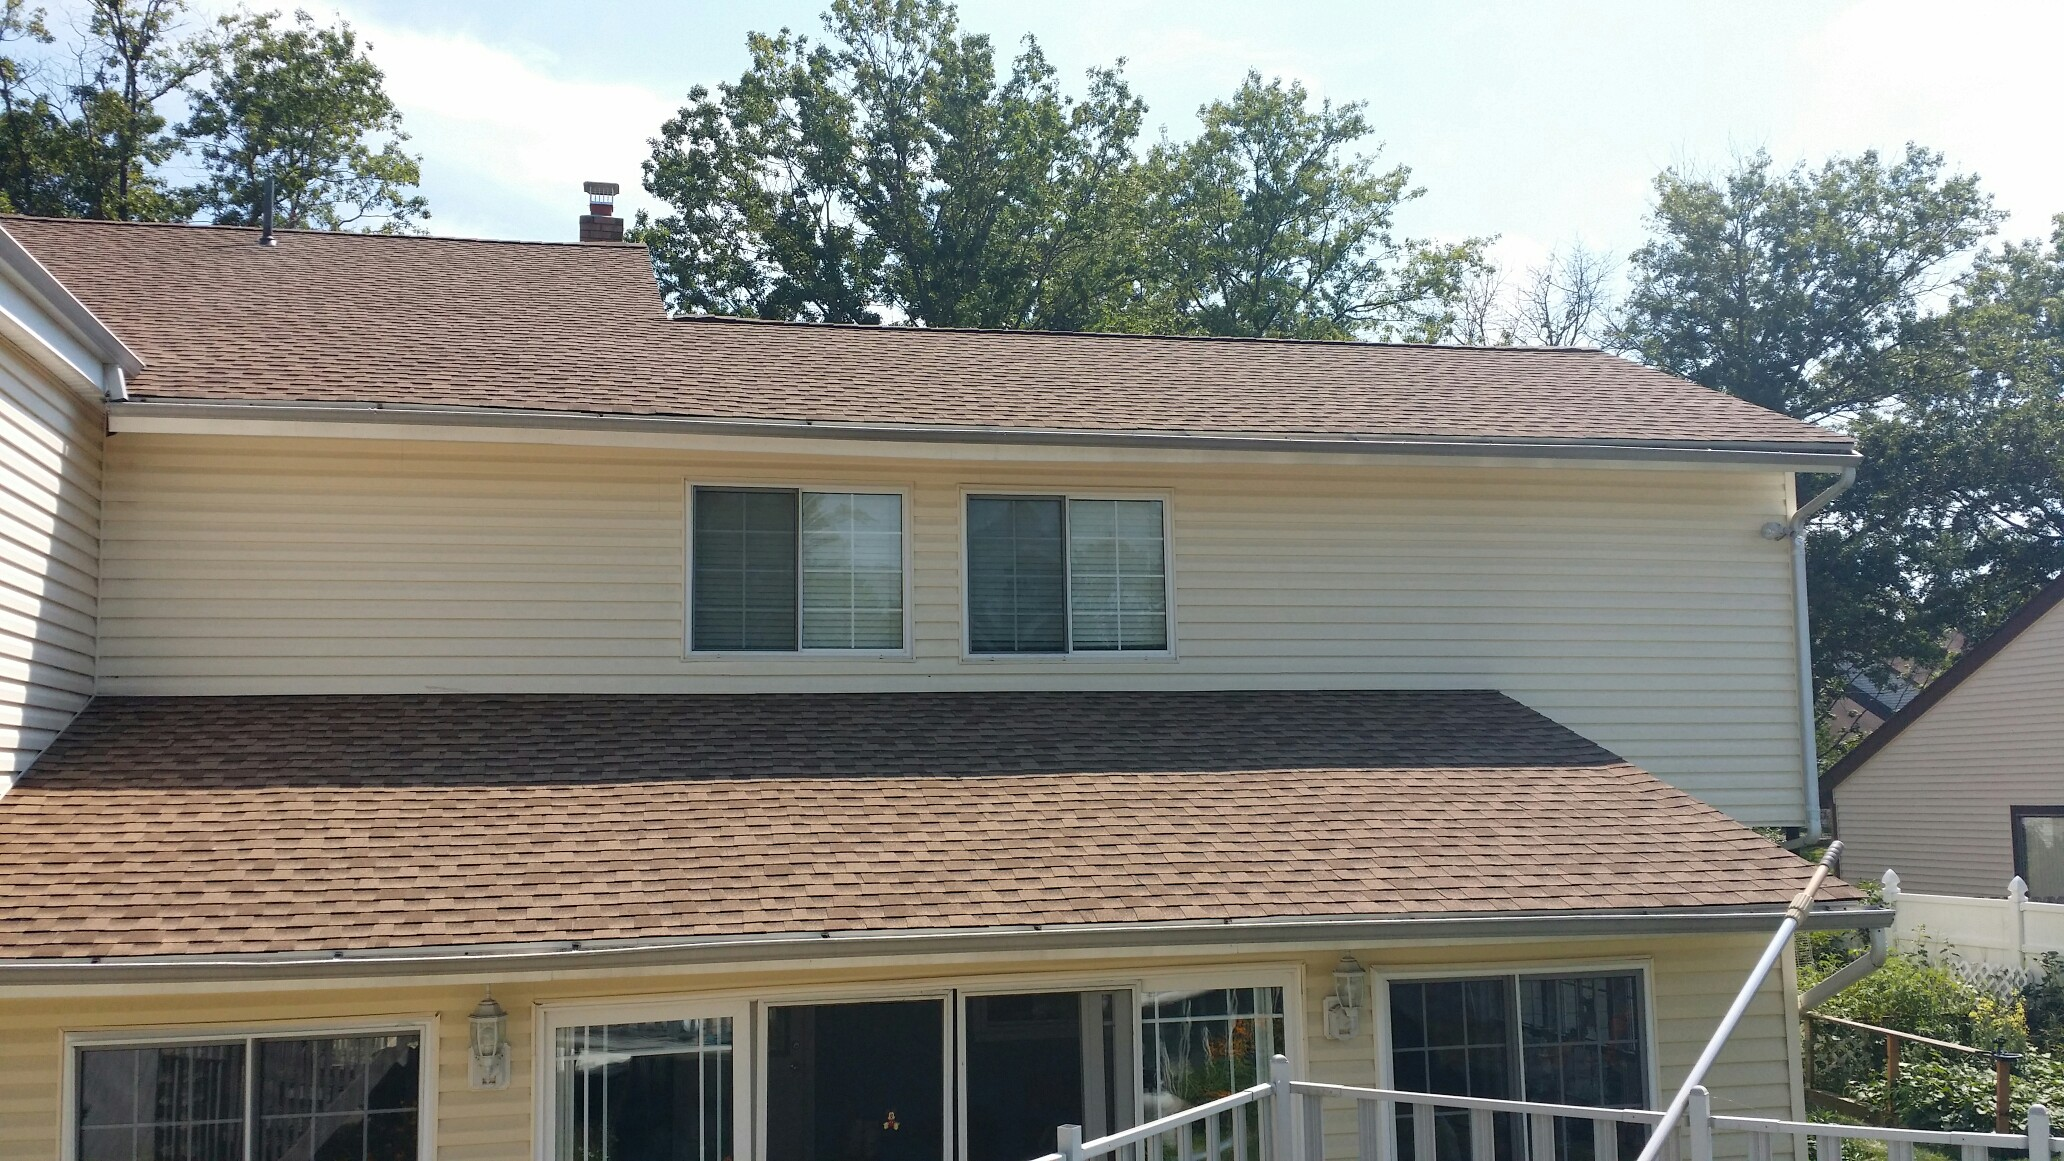 GAF Timberline HD Roofing System With Shakewood Shingles